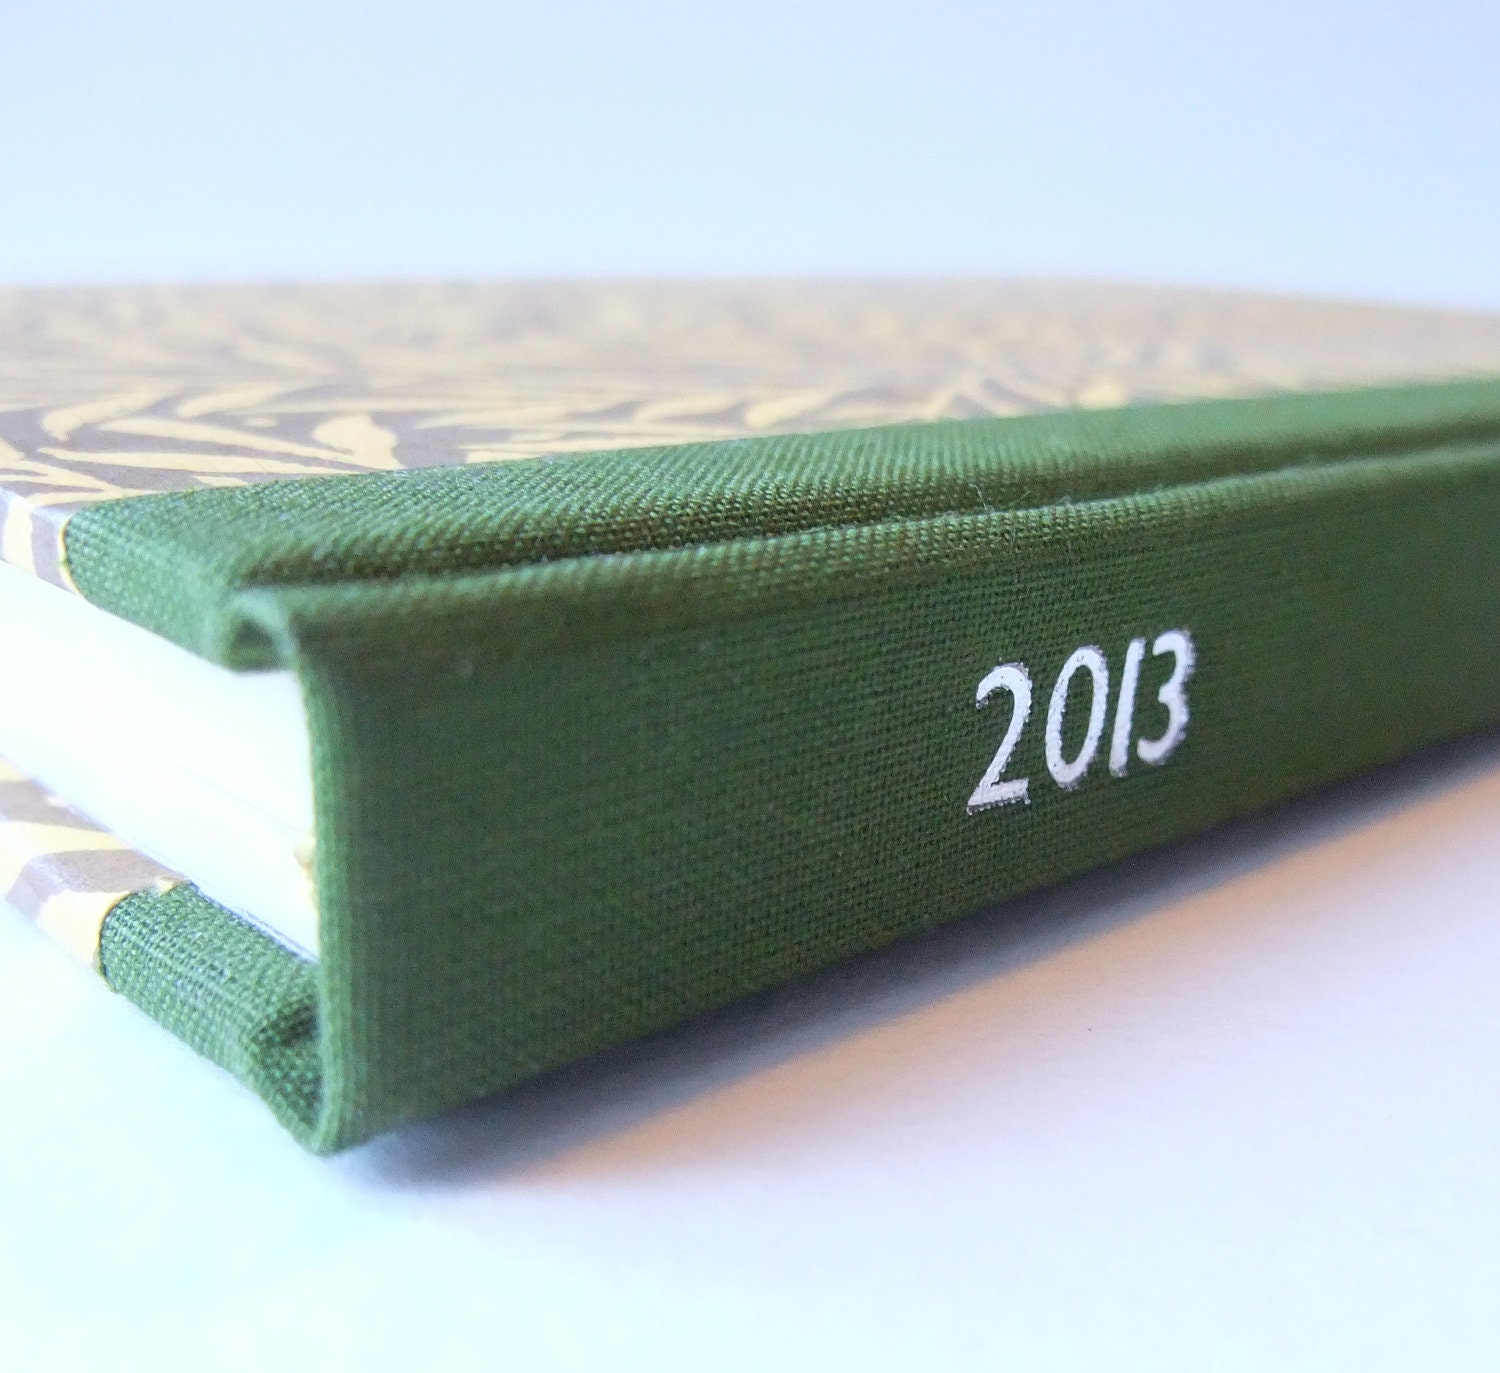 NEW LARGER SIZE: 2013 Diary with Decorative Paper Covers - HandMadeBooks